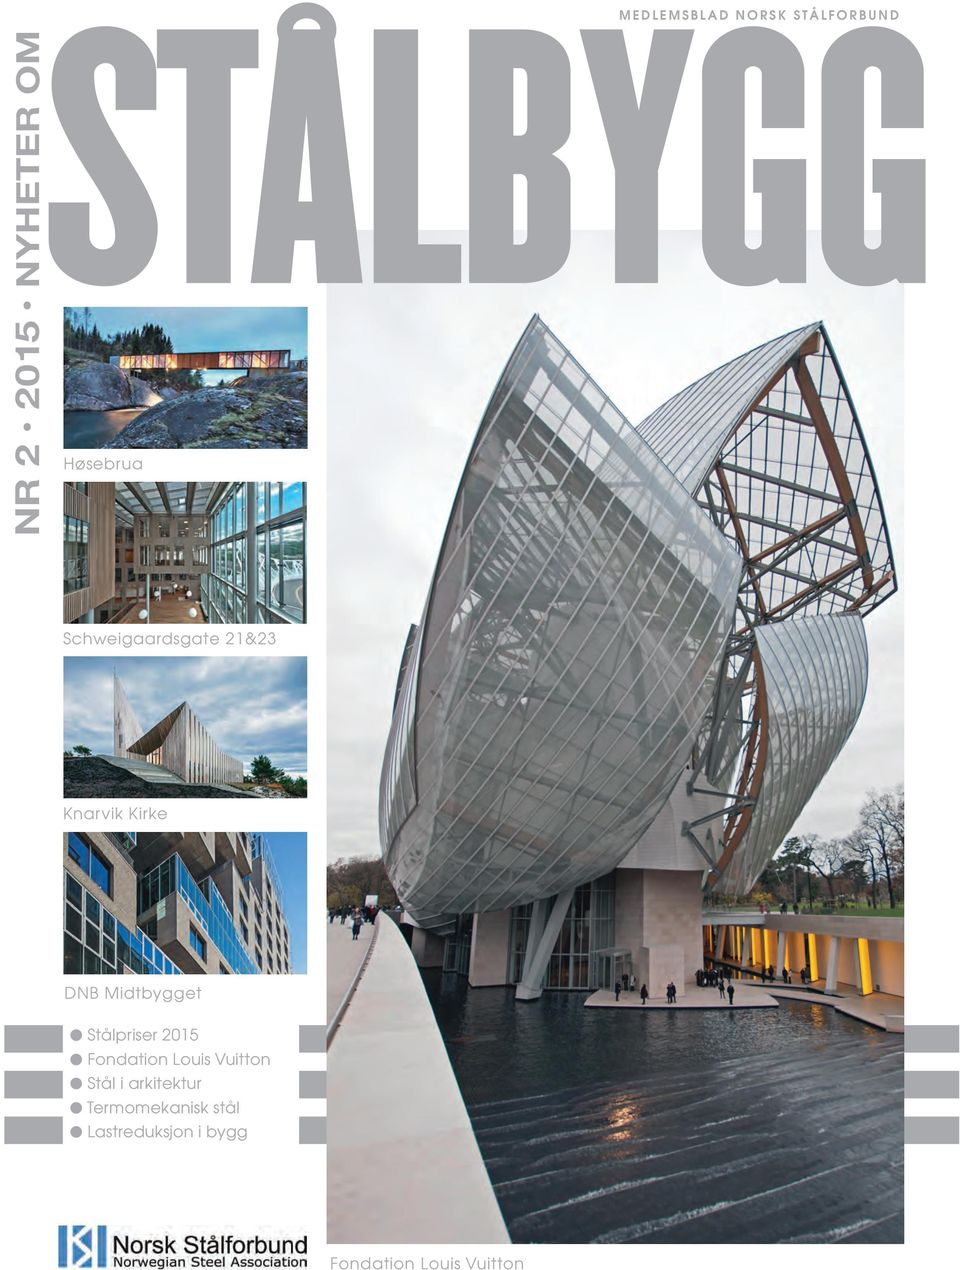 Stålpriser 2015 l Fondation Louis Vuitton l Stål i